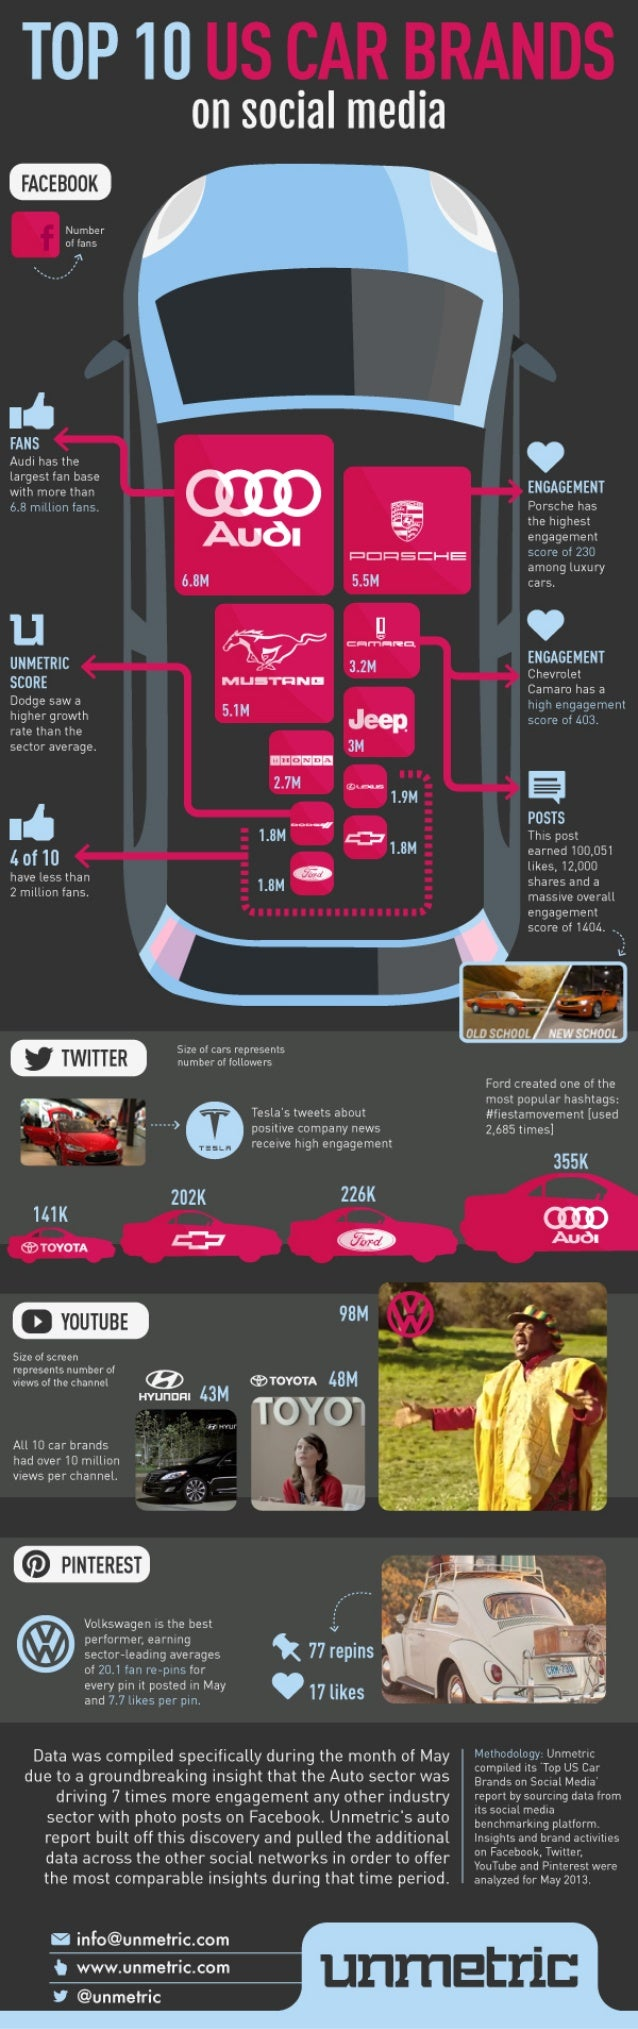 Top 10 US Car Brands on social media